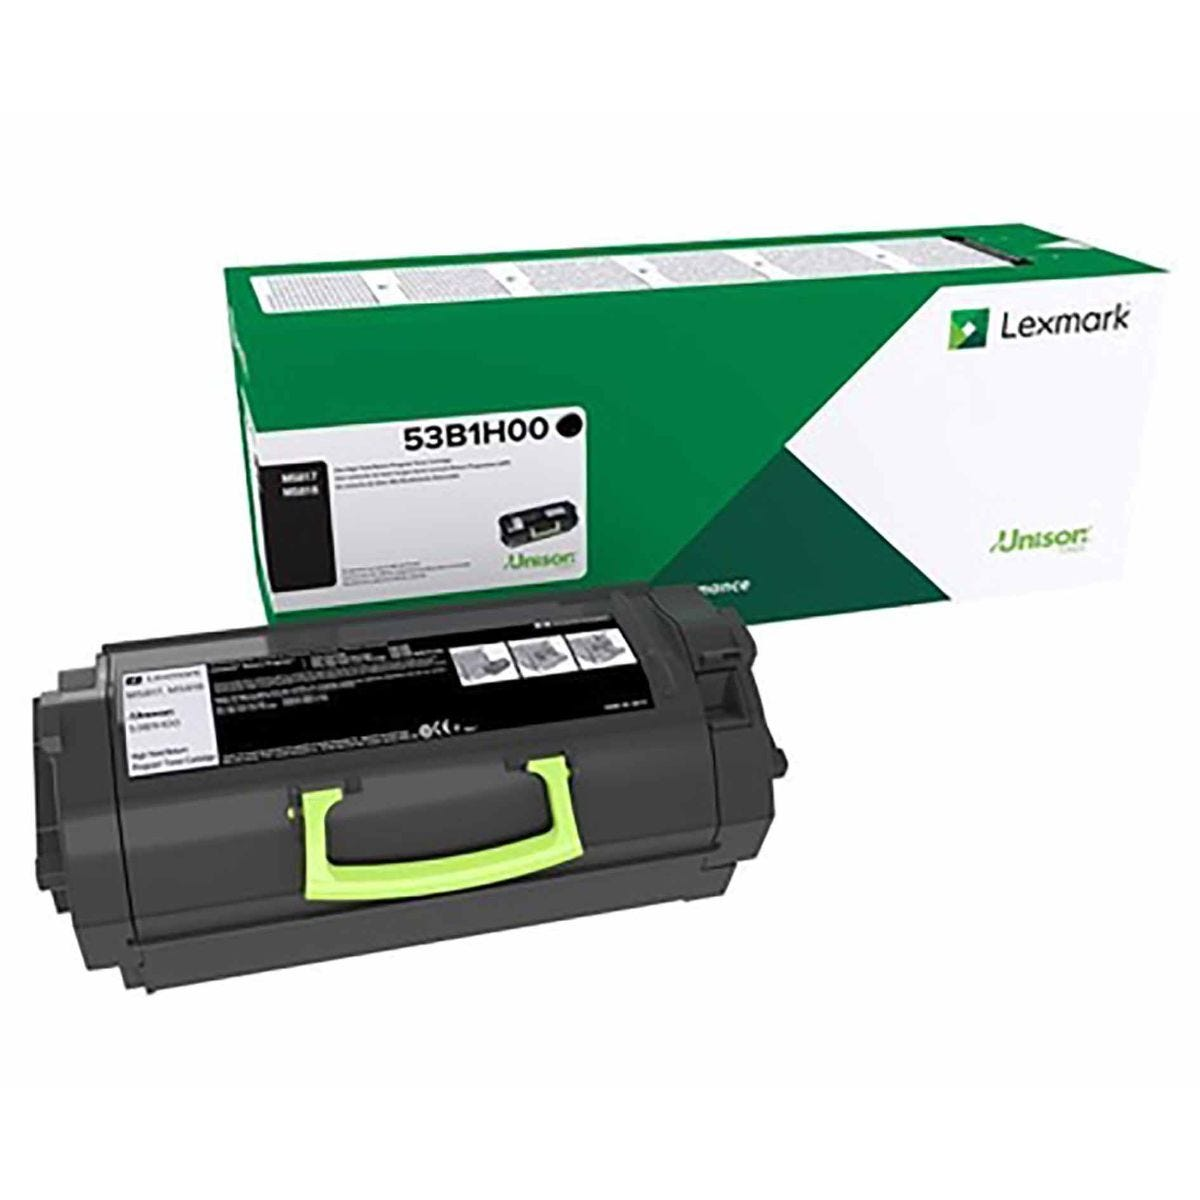 Lexmark 53B2H00 Black Original Toner Cartridge